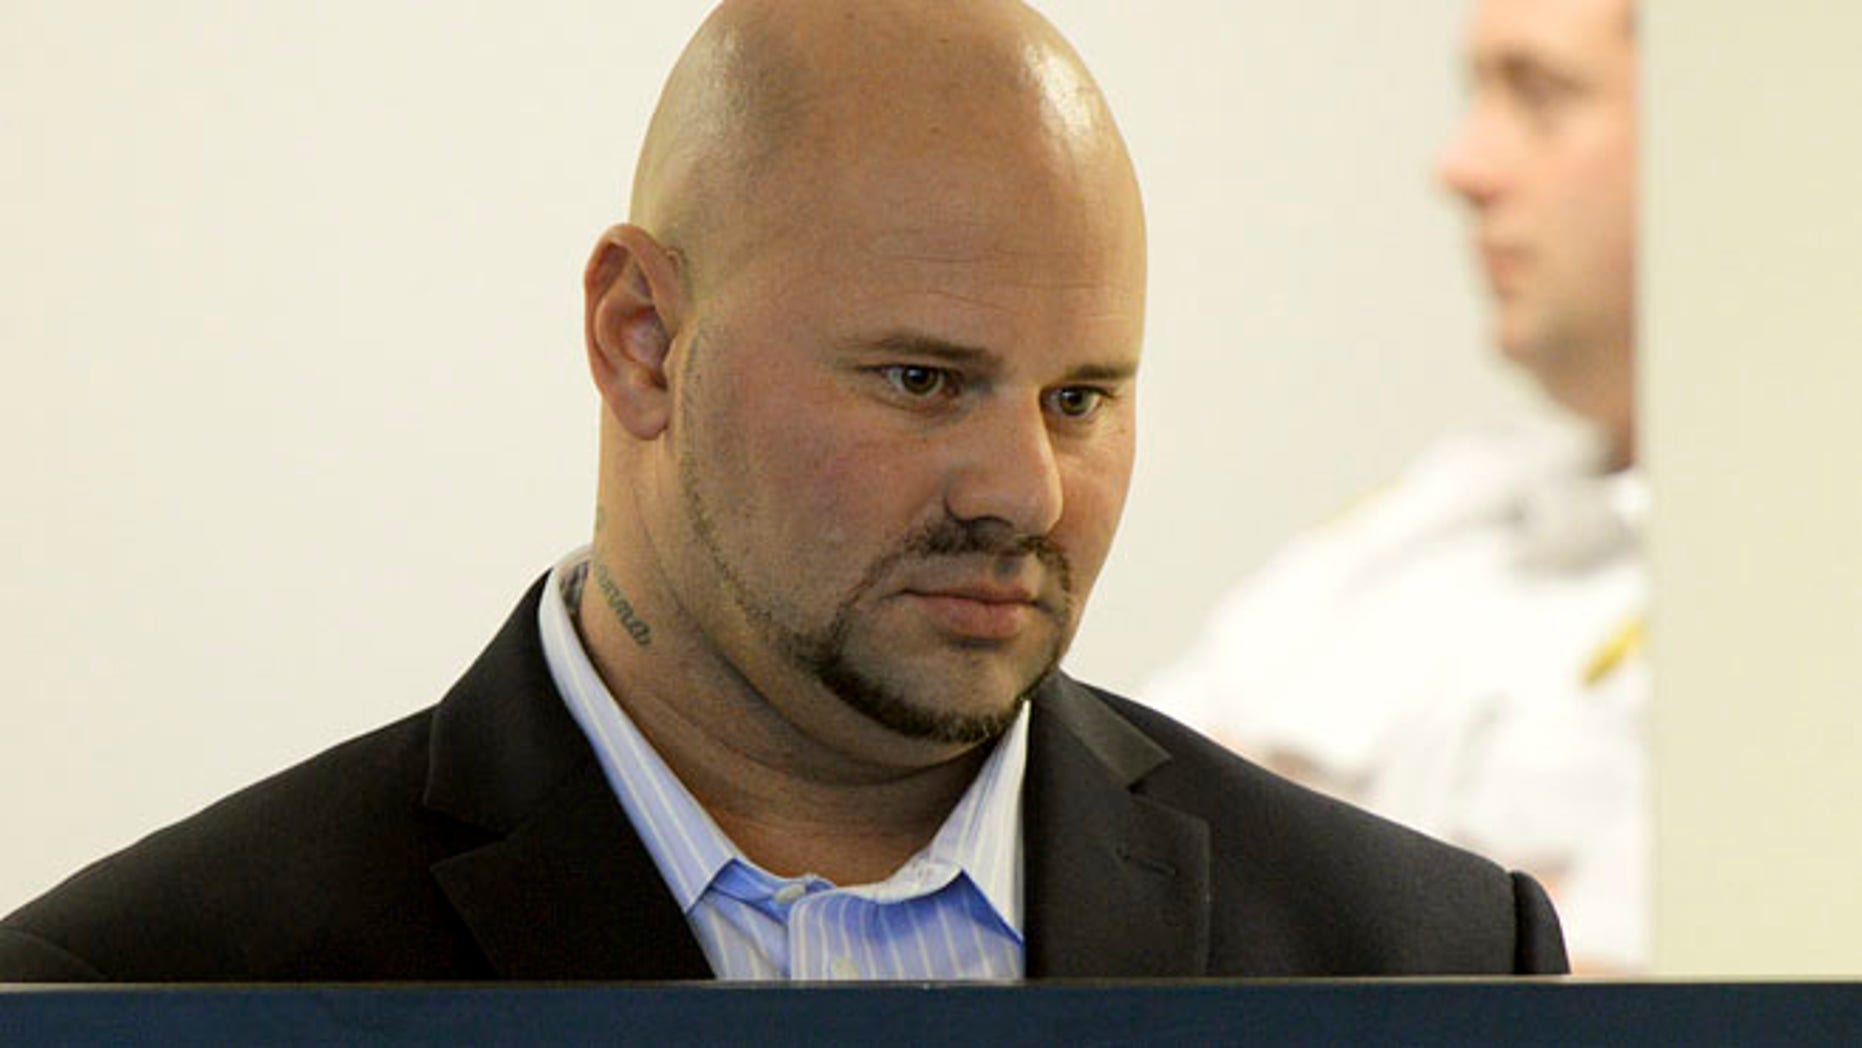 Oct. 8: Jared Remy, son of Boston Red Sox broadcaster Jerry Remy, stands during arraignment at Middlesex Superior Court in Woburn, Mass.